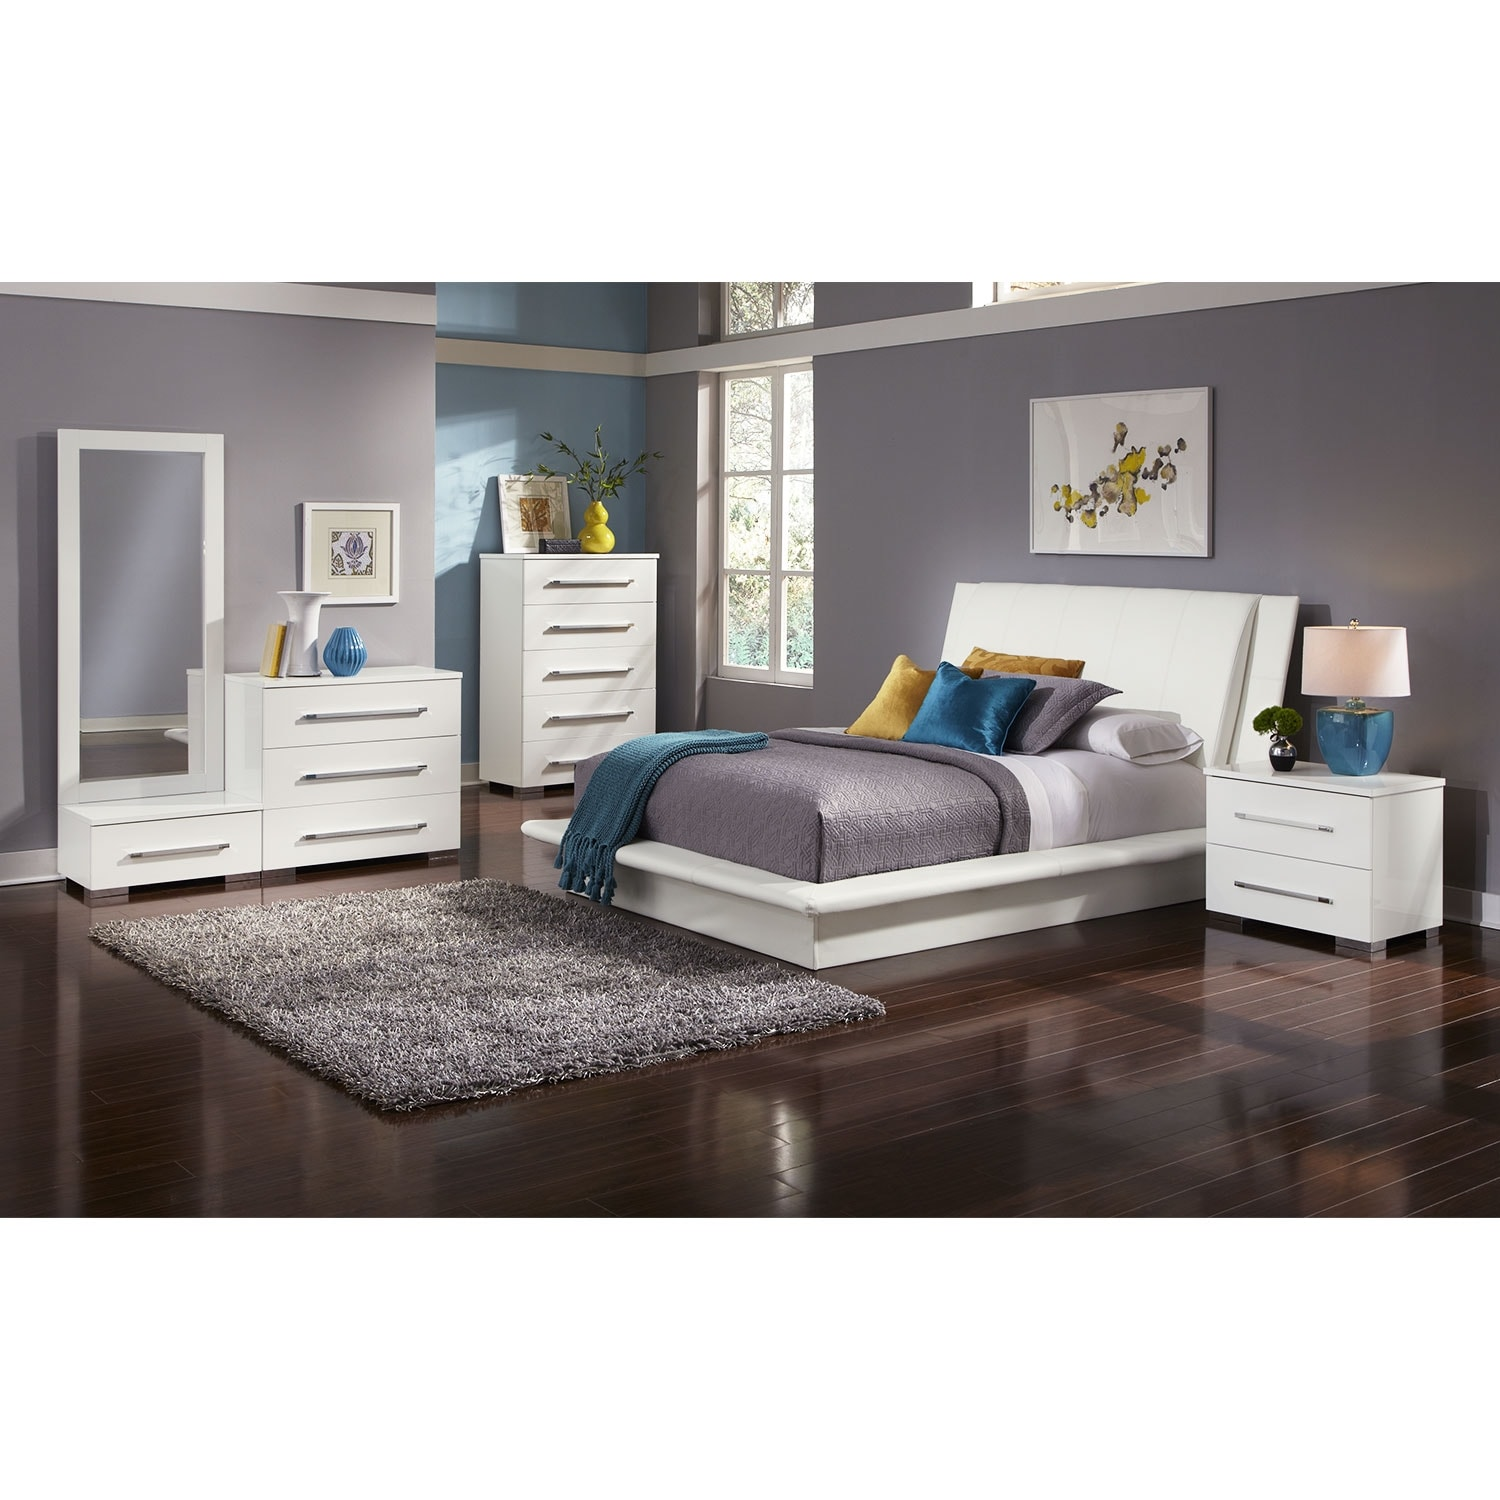 Dimora 7-Piece King Upholstered Bedroom Set - White | American ...